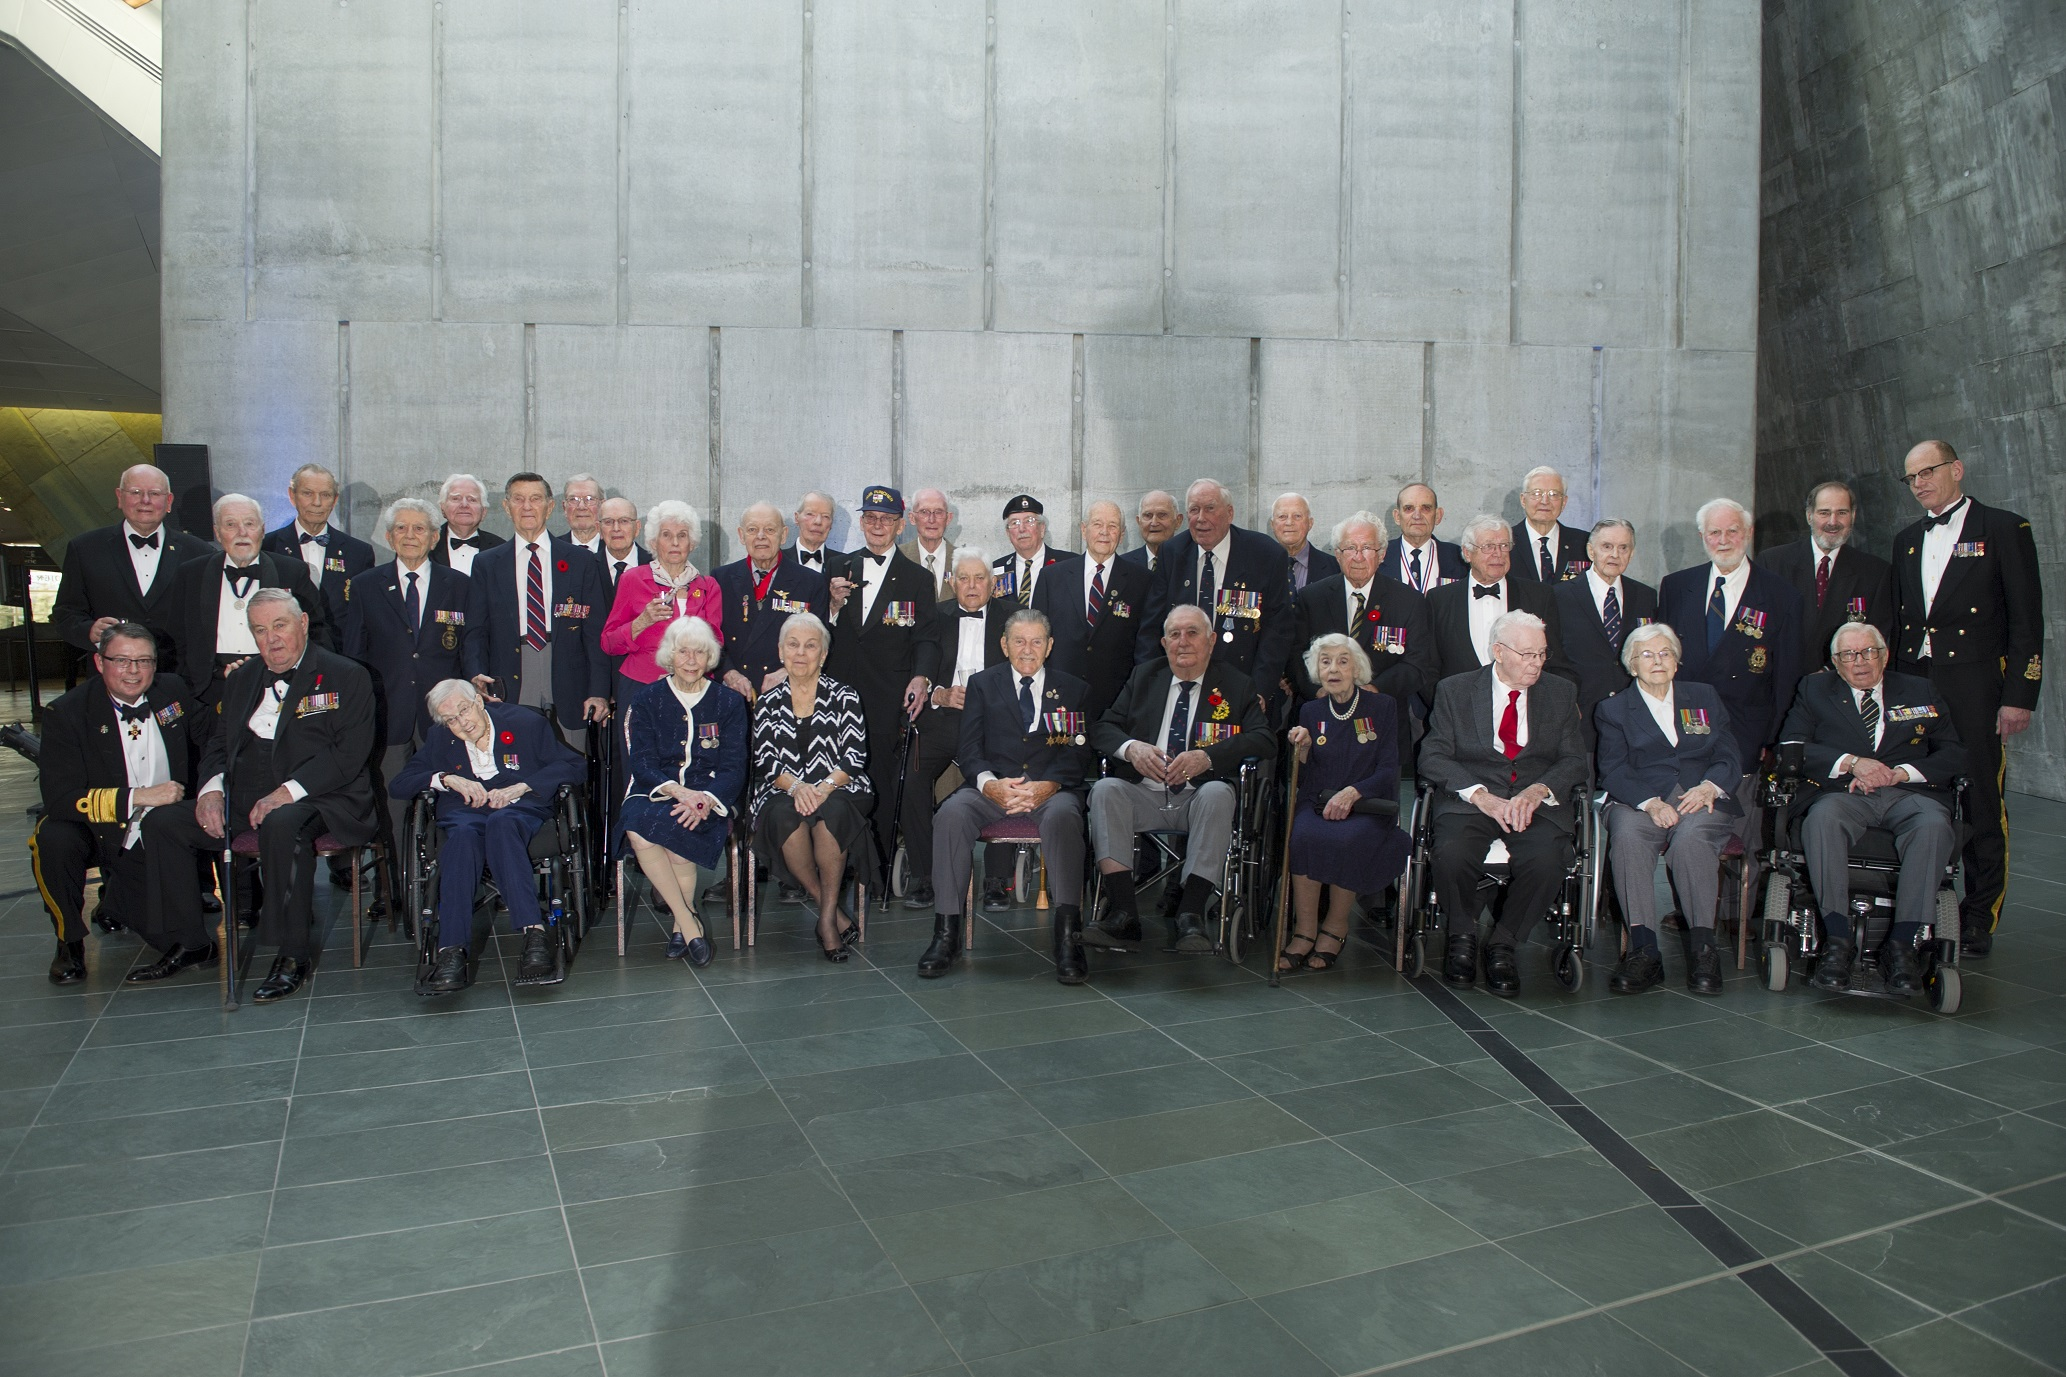 Veterans of the Battle of the Atlantic